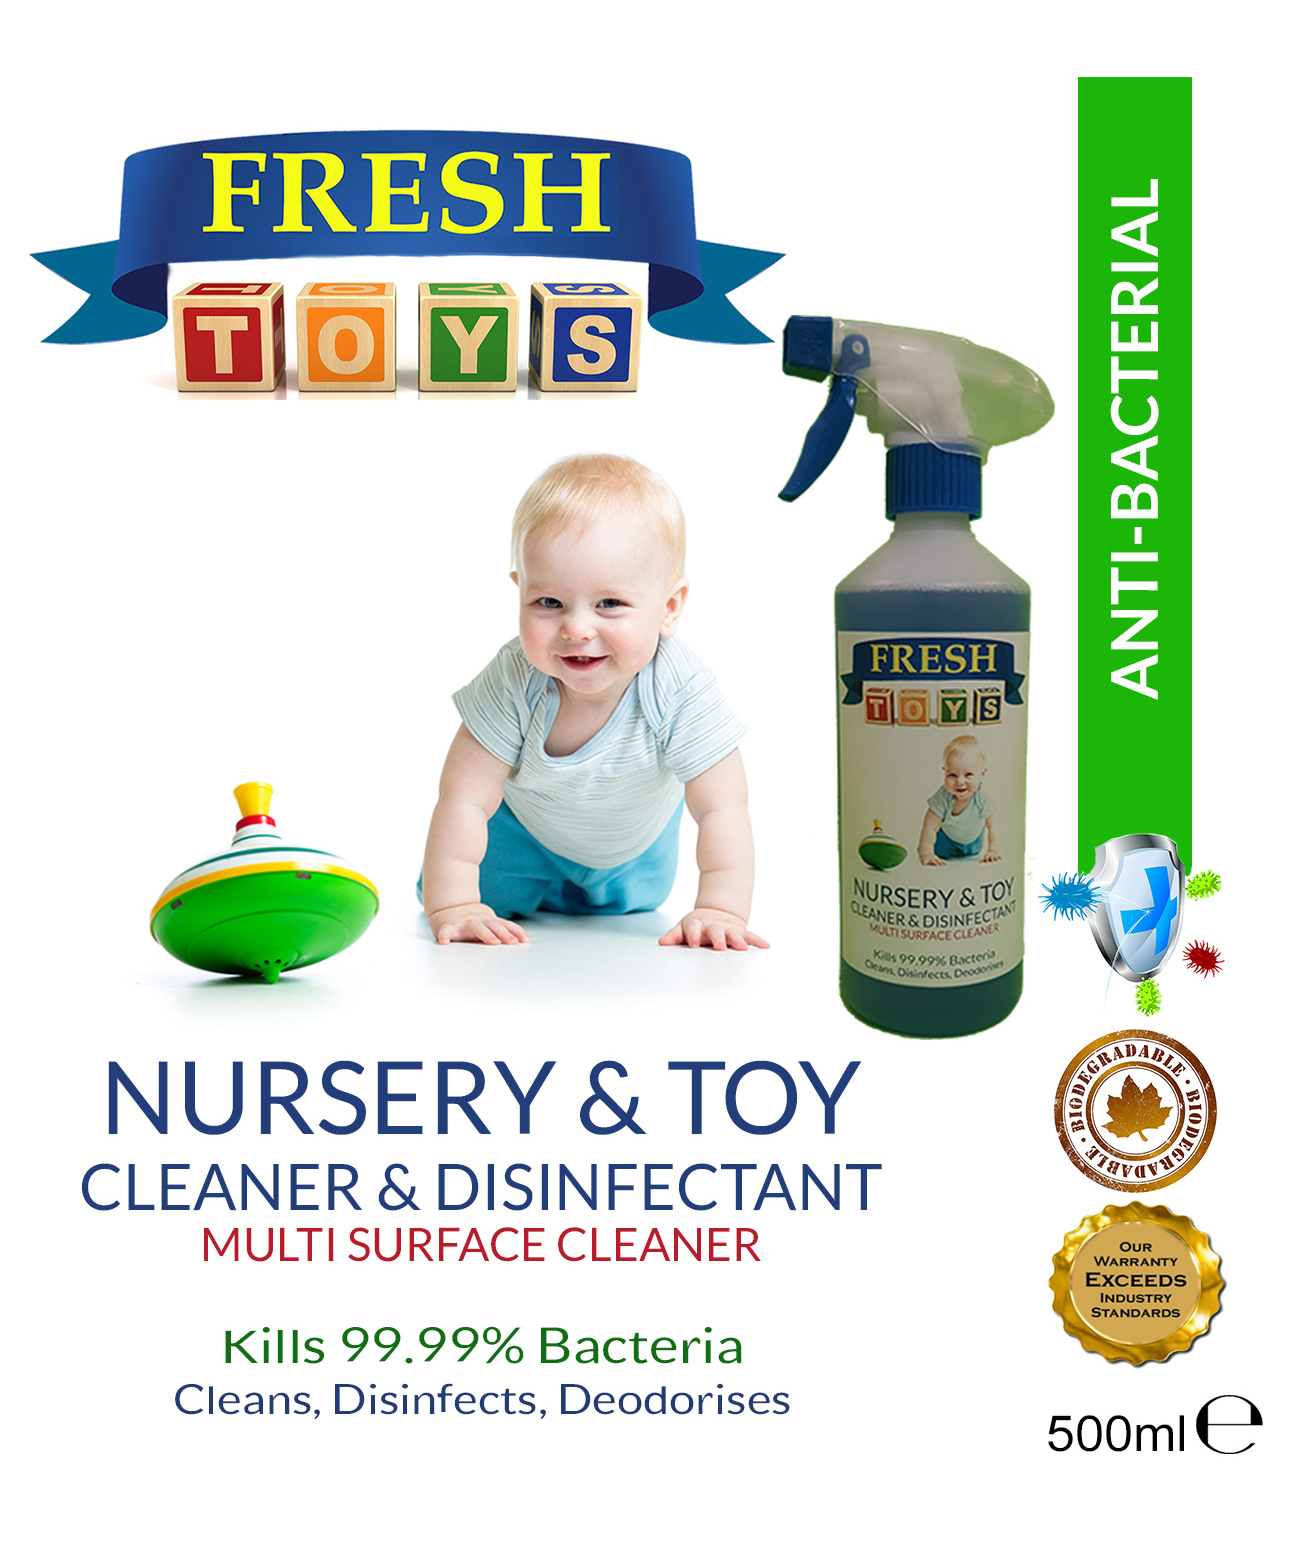 products-TC-TOY-CLEANER-500ML-advert